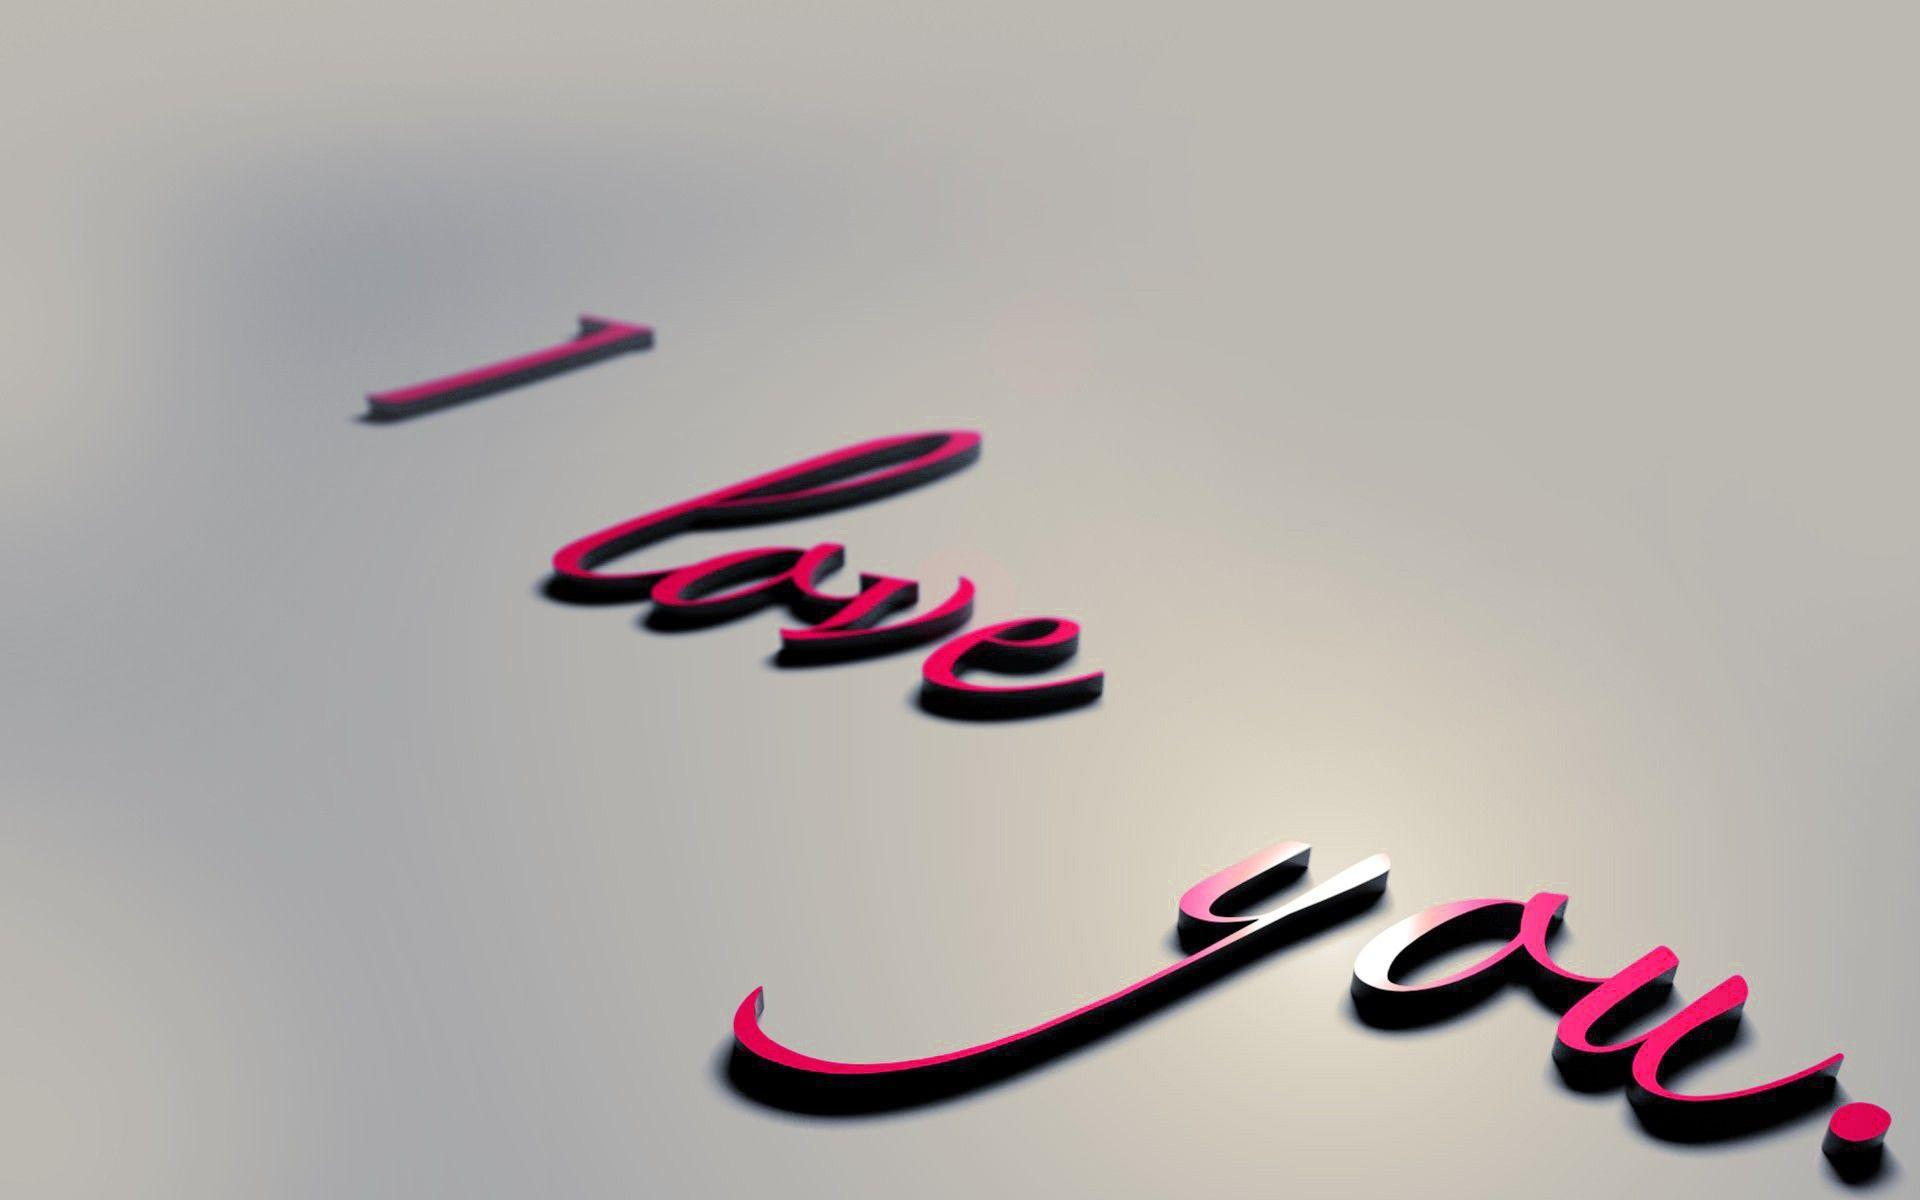 I Love You 3D Text Letters HD Wallpapers